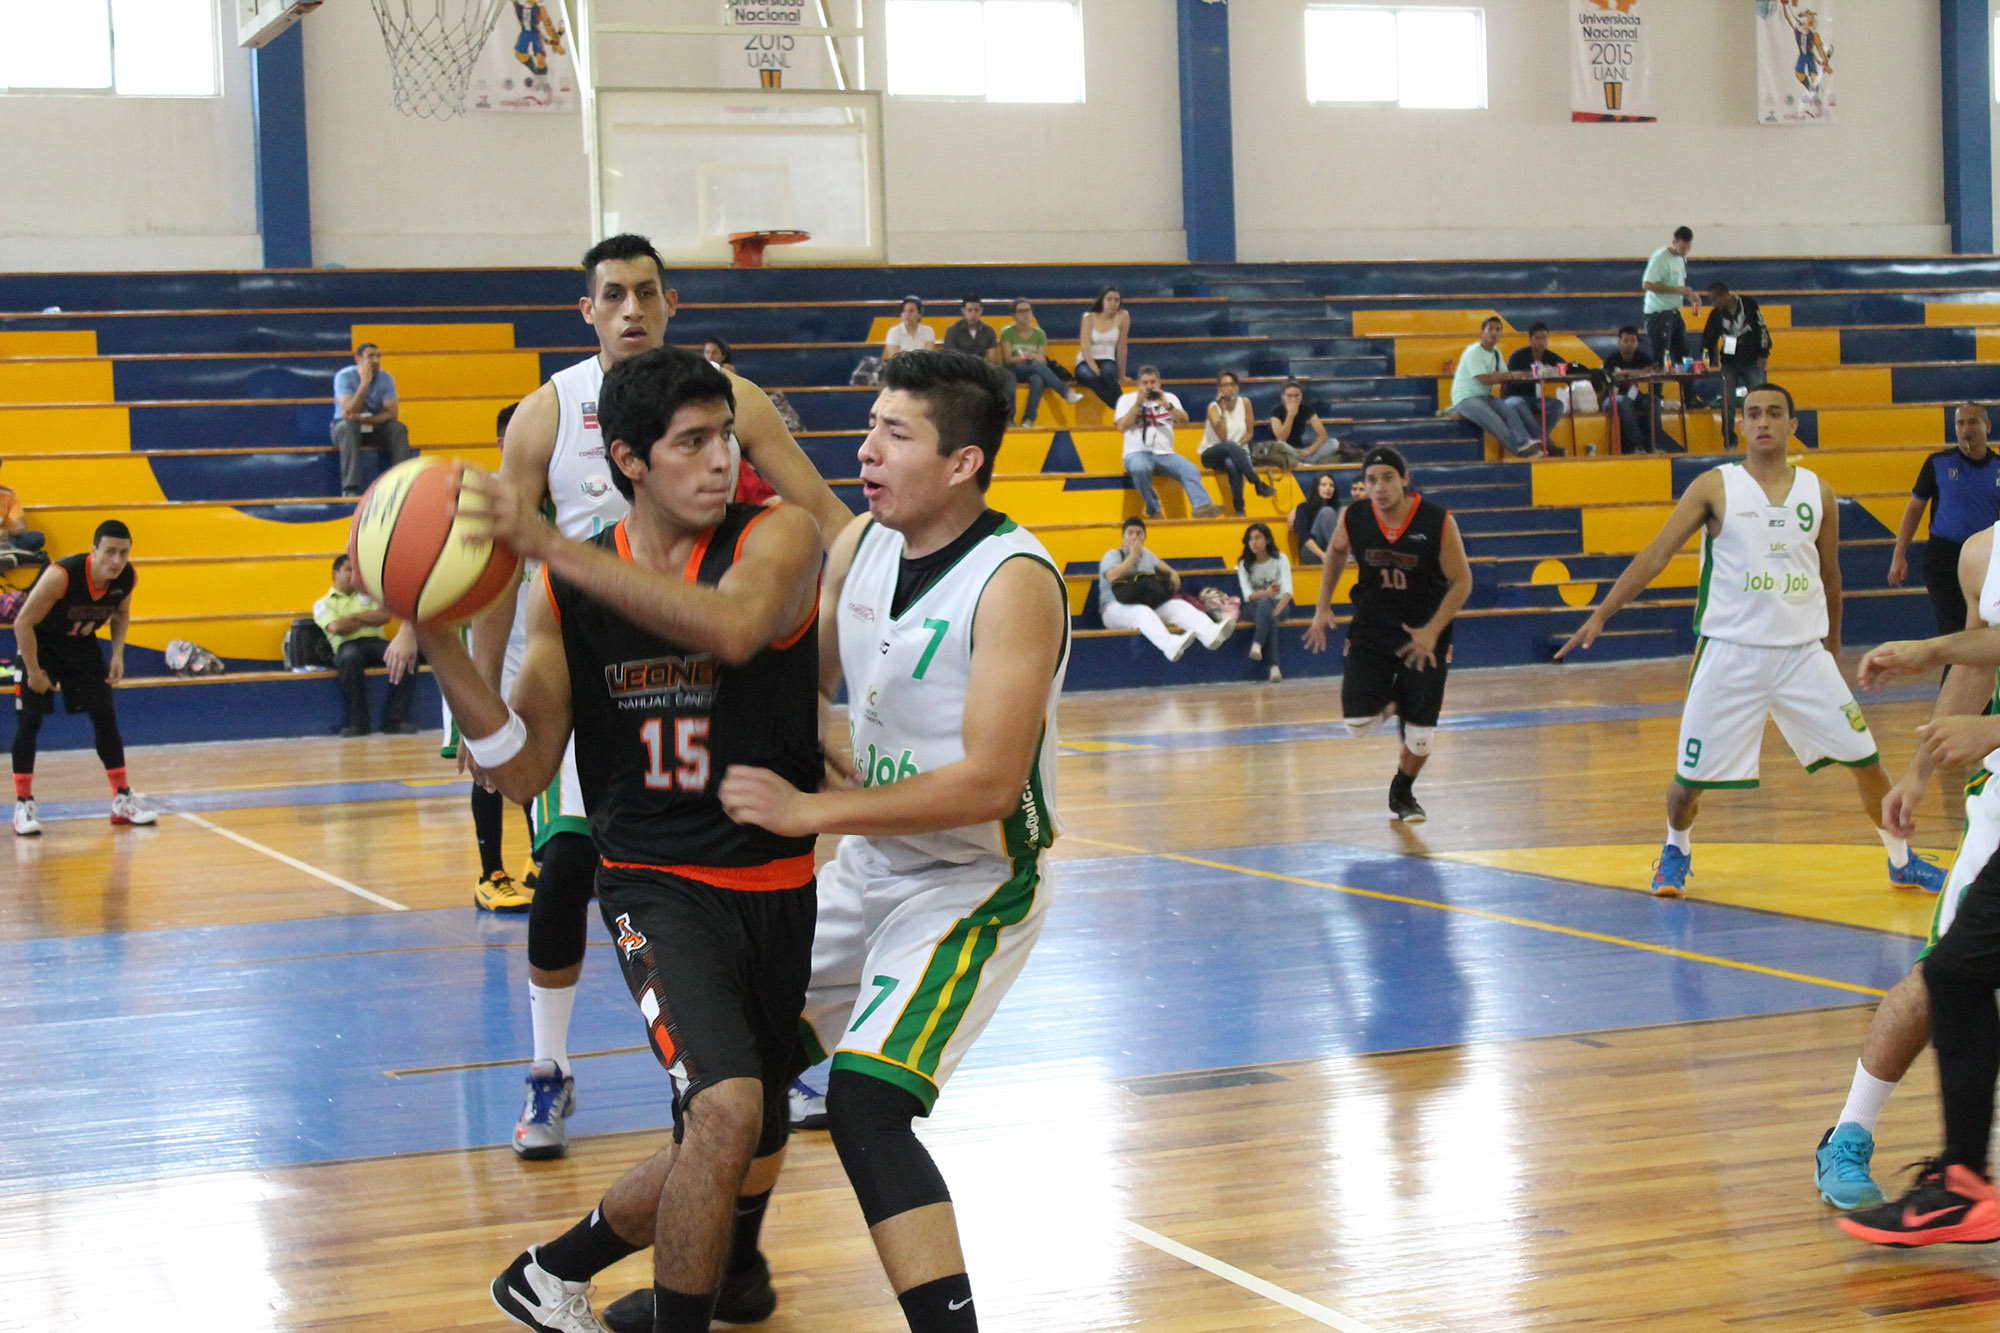 Universiada nacional 2015-basquetbol  ITESM Guadalajara vs Universidad Marista de Merida-foto Norma Martinez 9